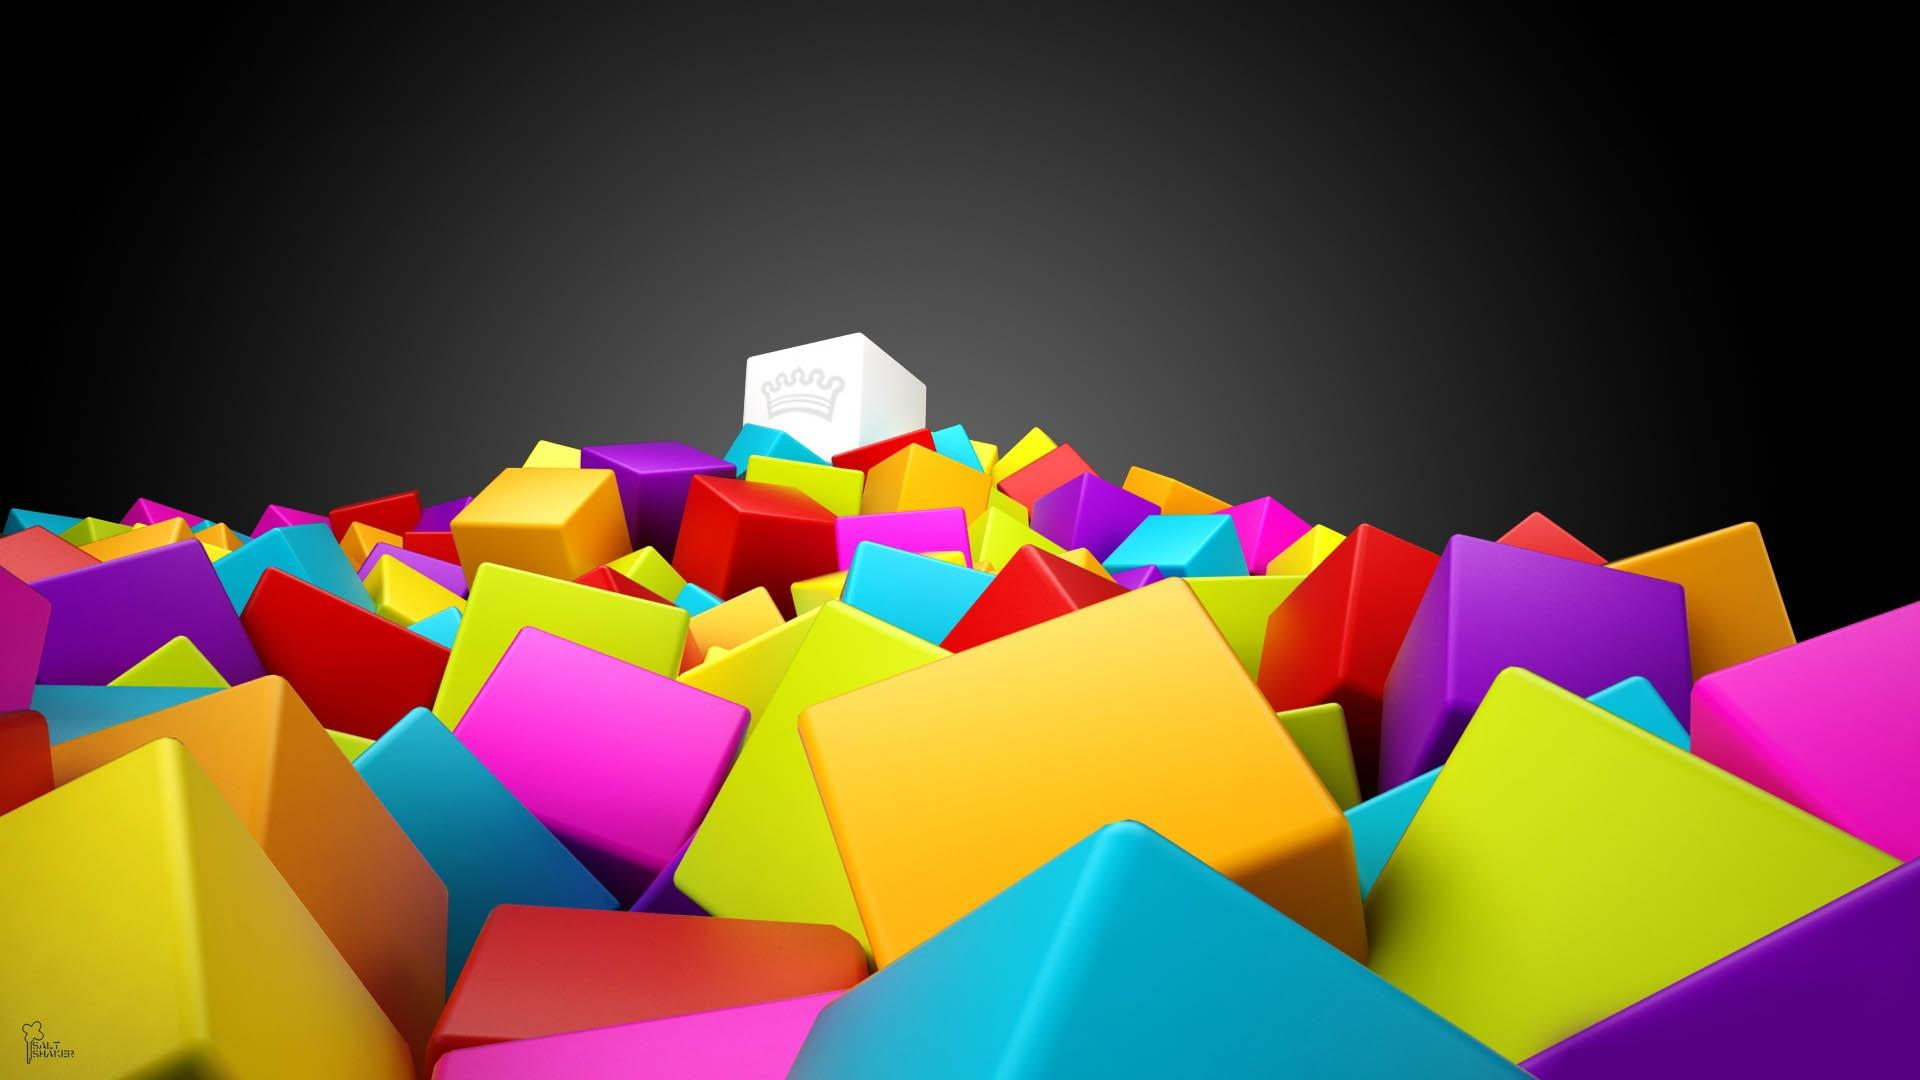 download wallpaper: kleurige 3D blokken wallpaper